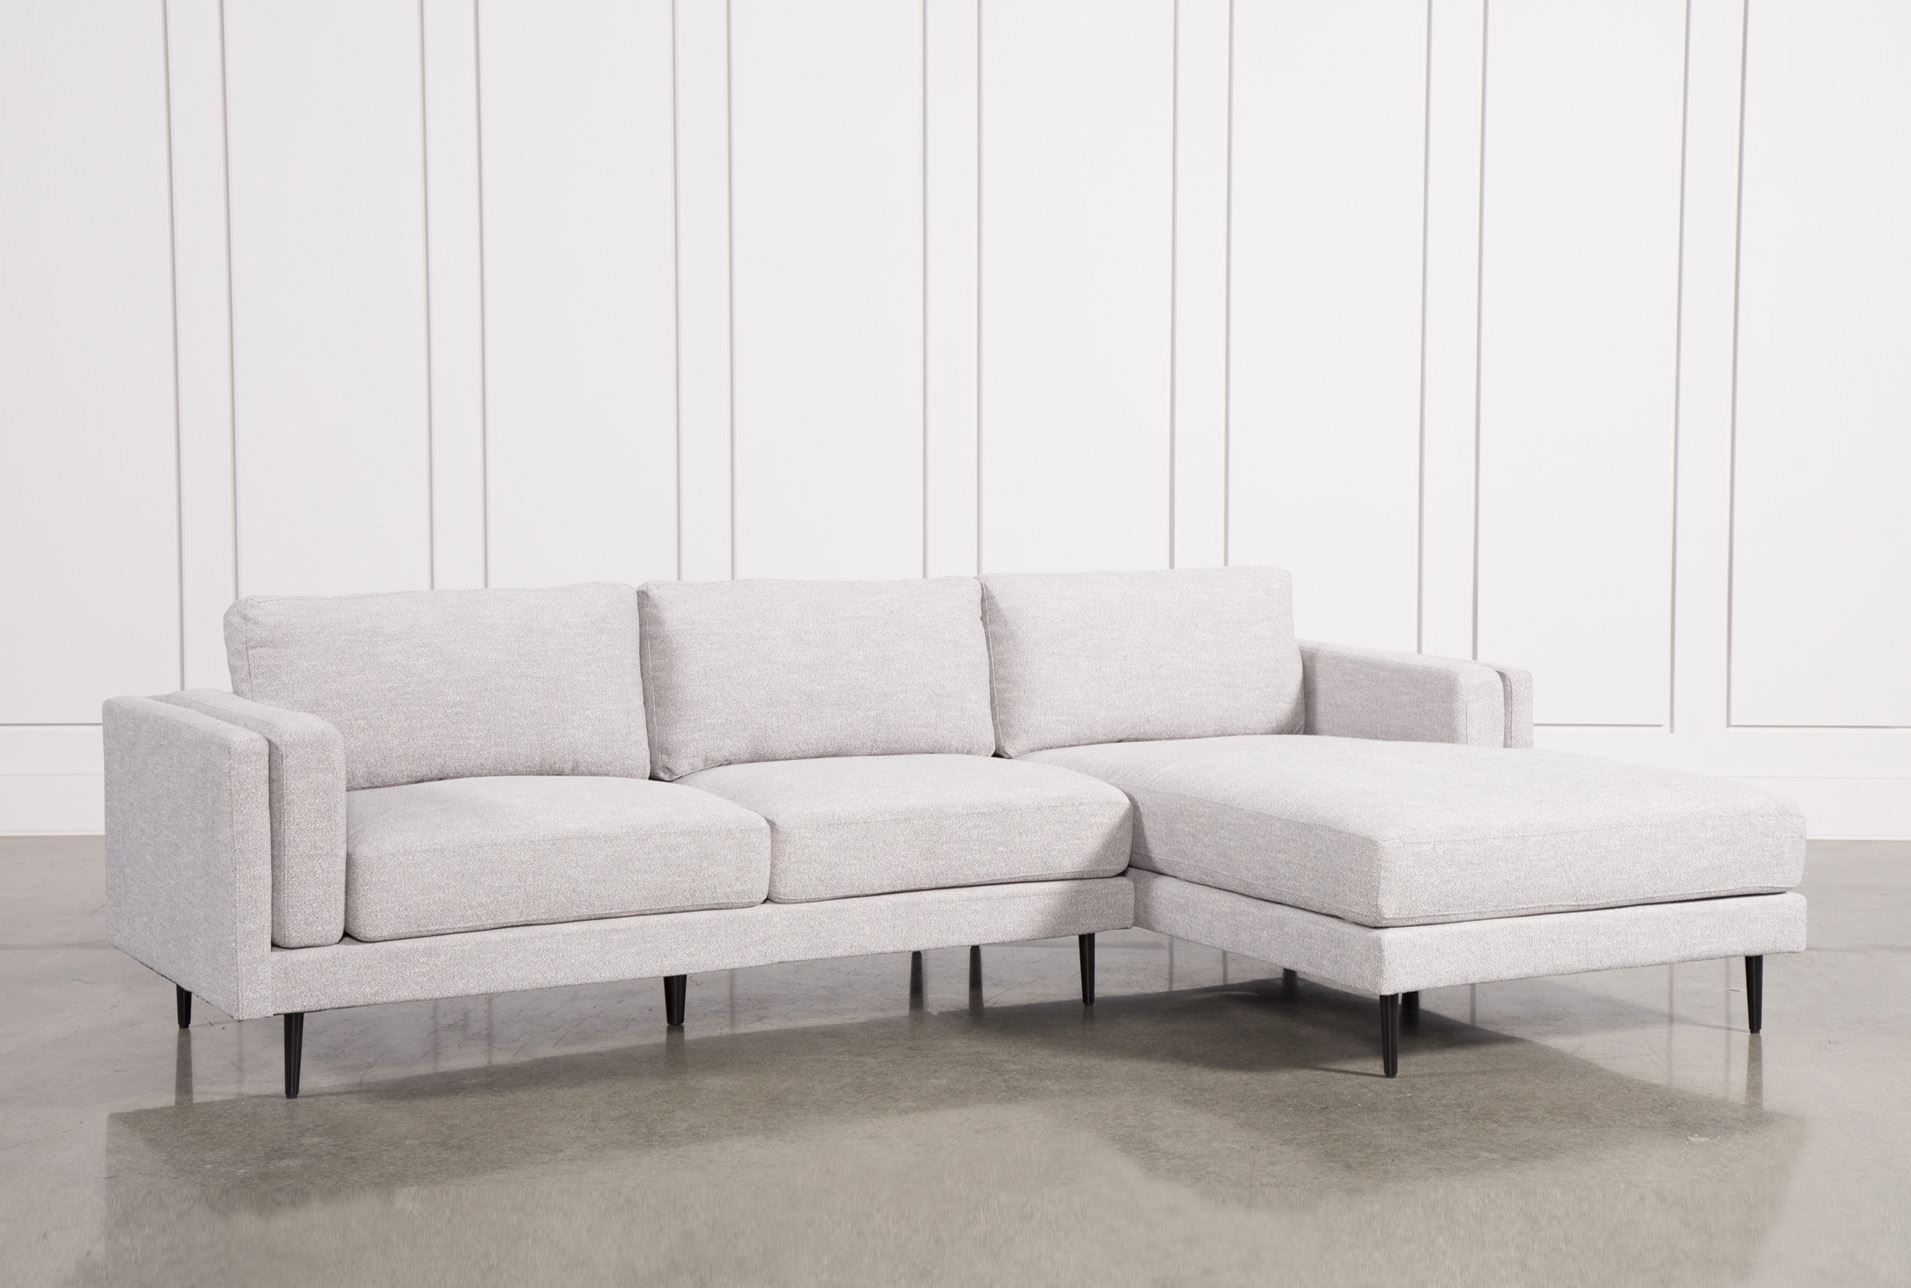 Aquarius Light Grey 2 Piece Sectional W/raf Chaise | Actual Sf In Lucy Grey 2 Piece Sectionals With Raf Chaise (Image 4 of 25)